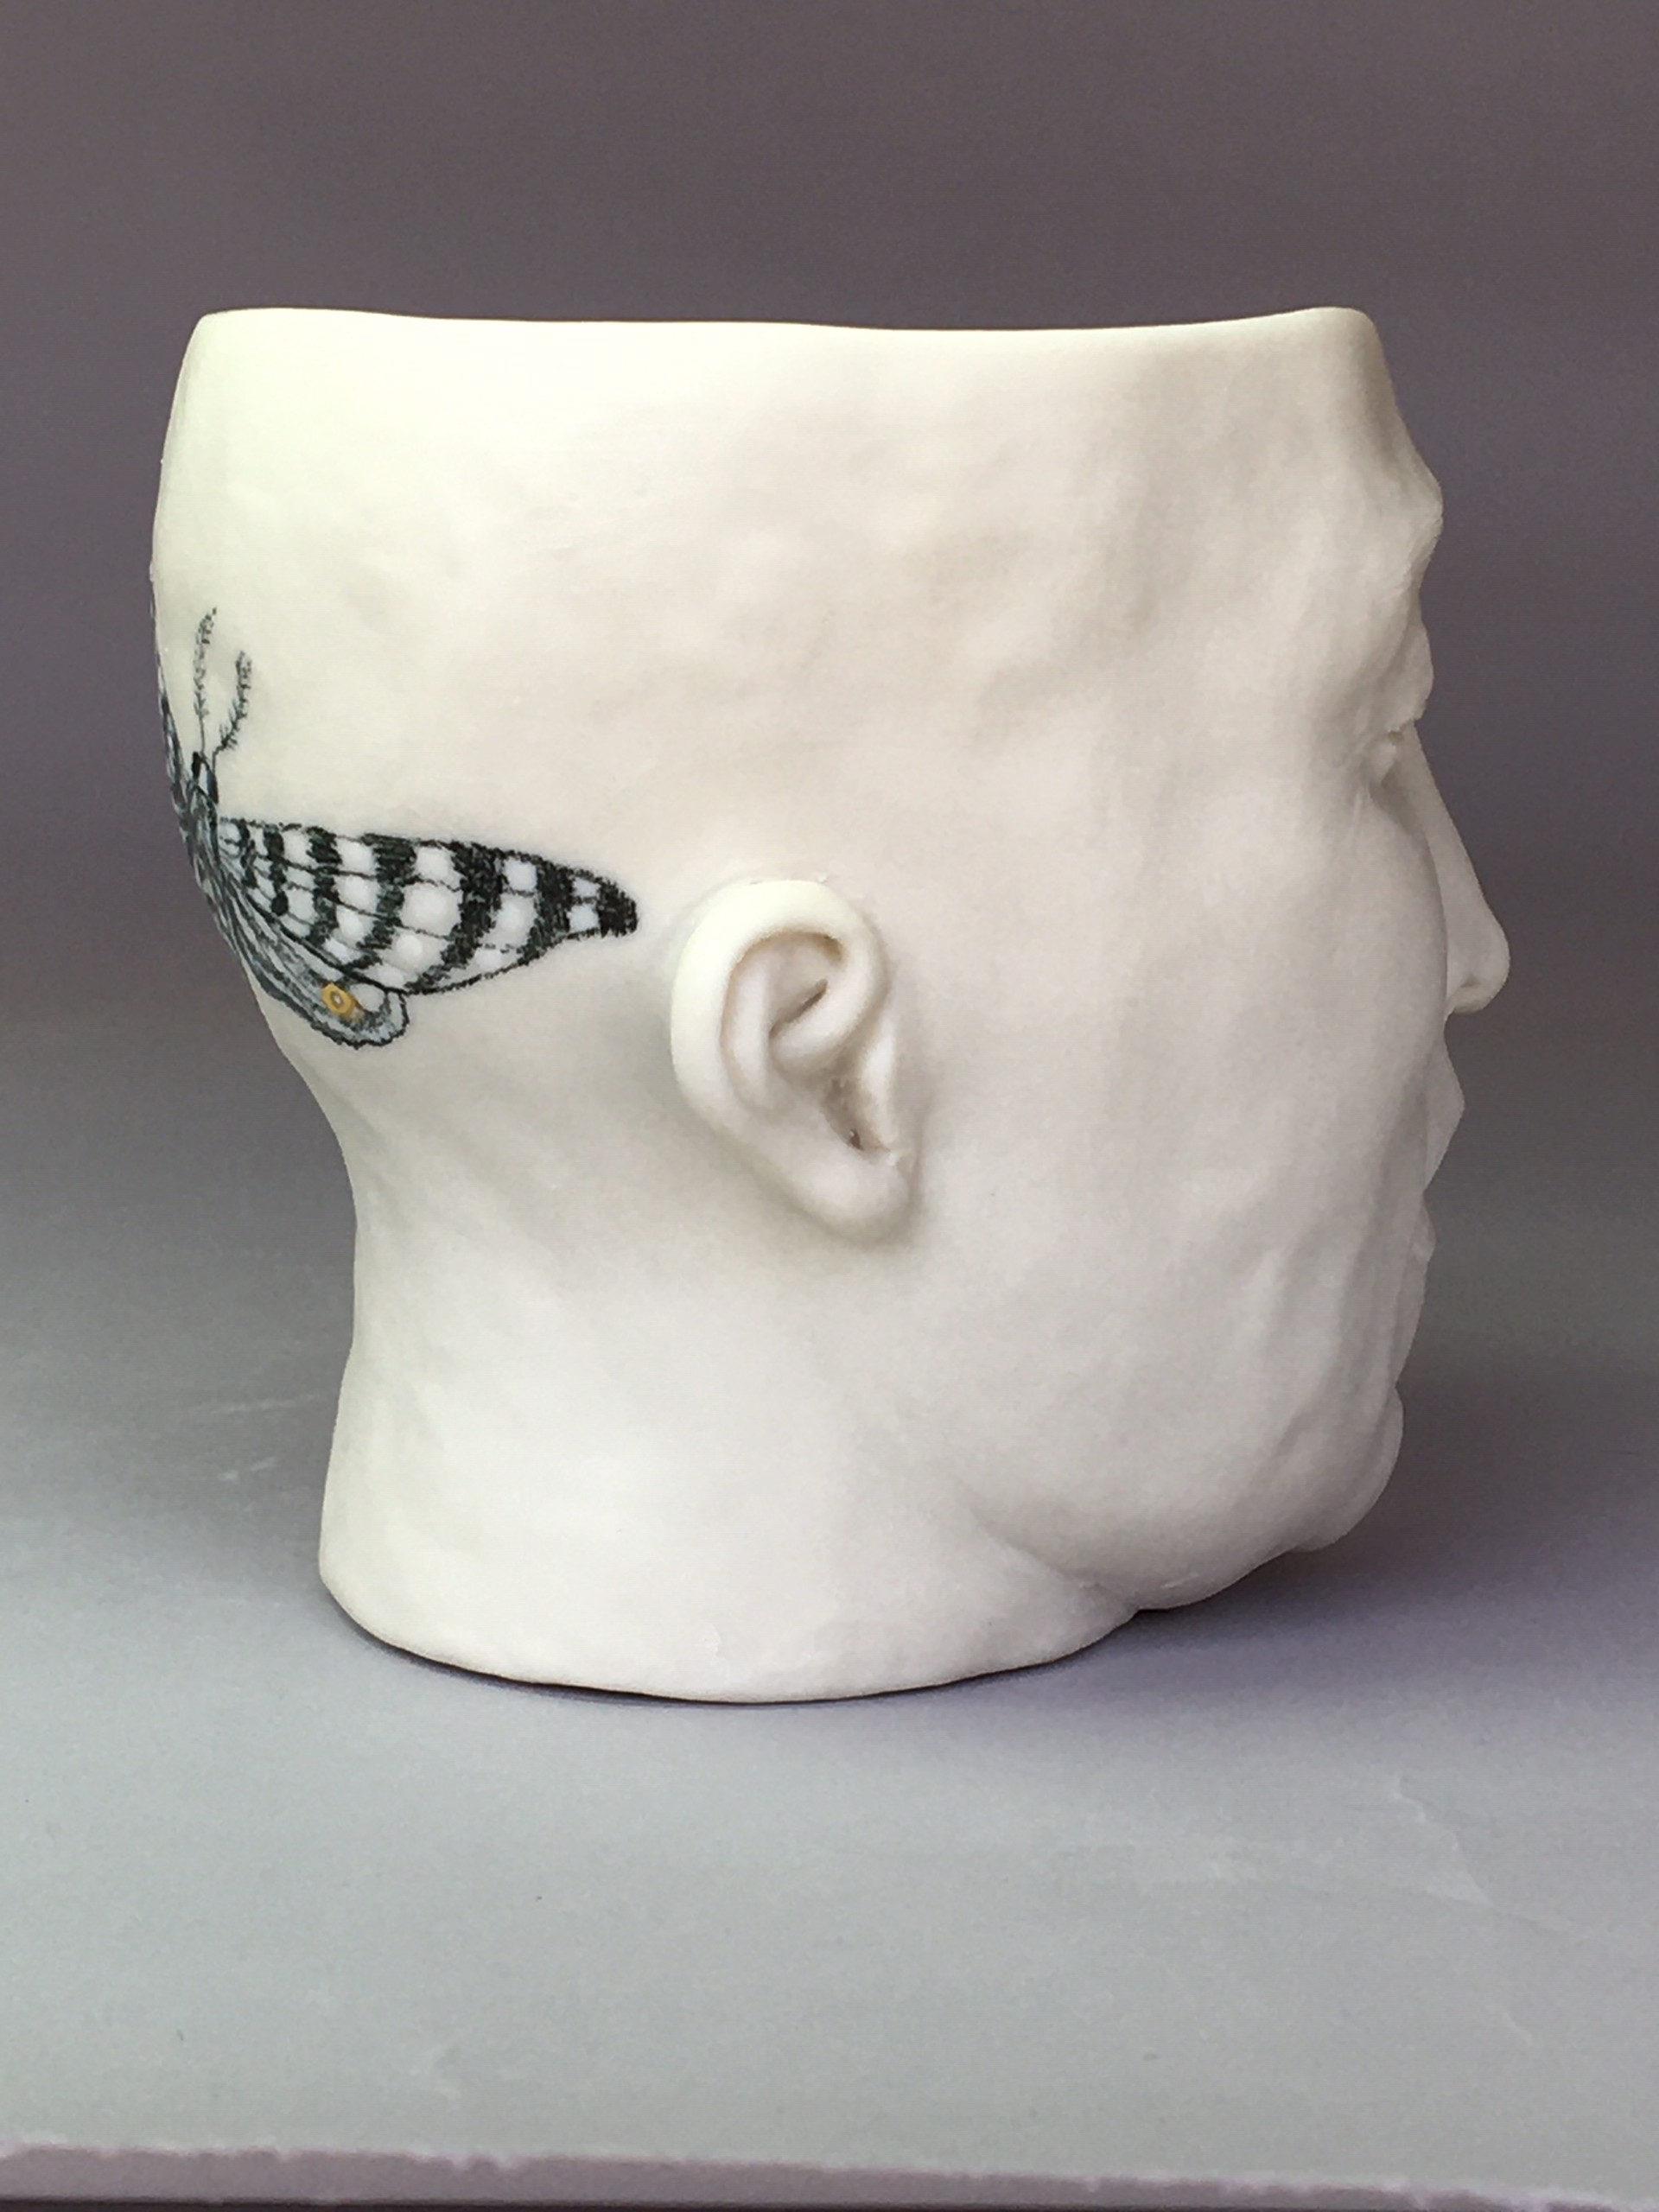 """Moth Cup I"" (back of head, light blue celadon, eyes closed) by Adrian Arleo"